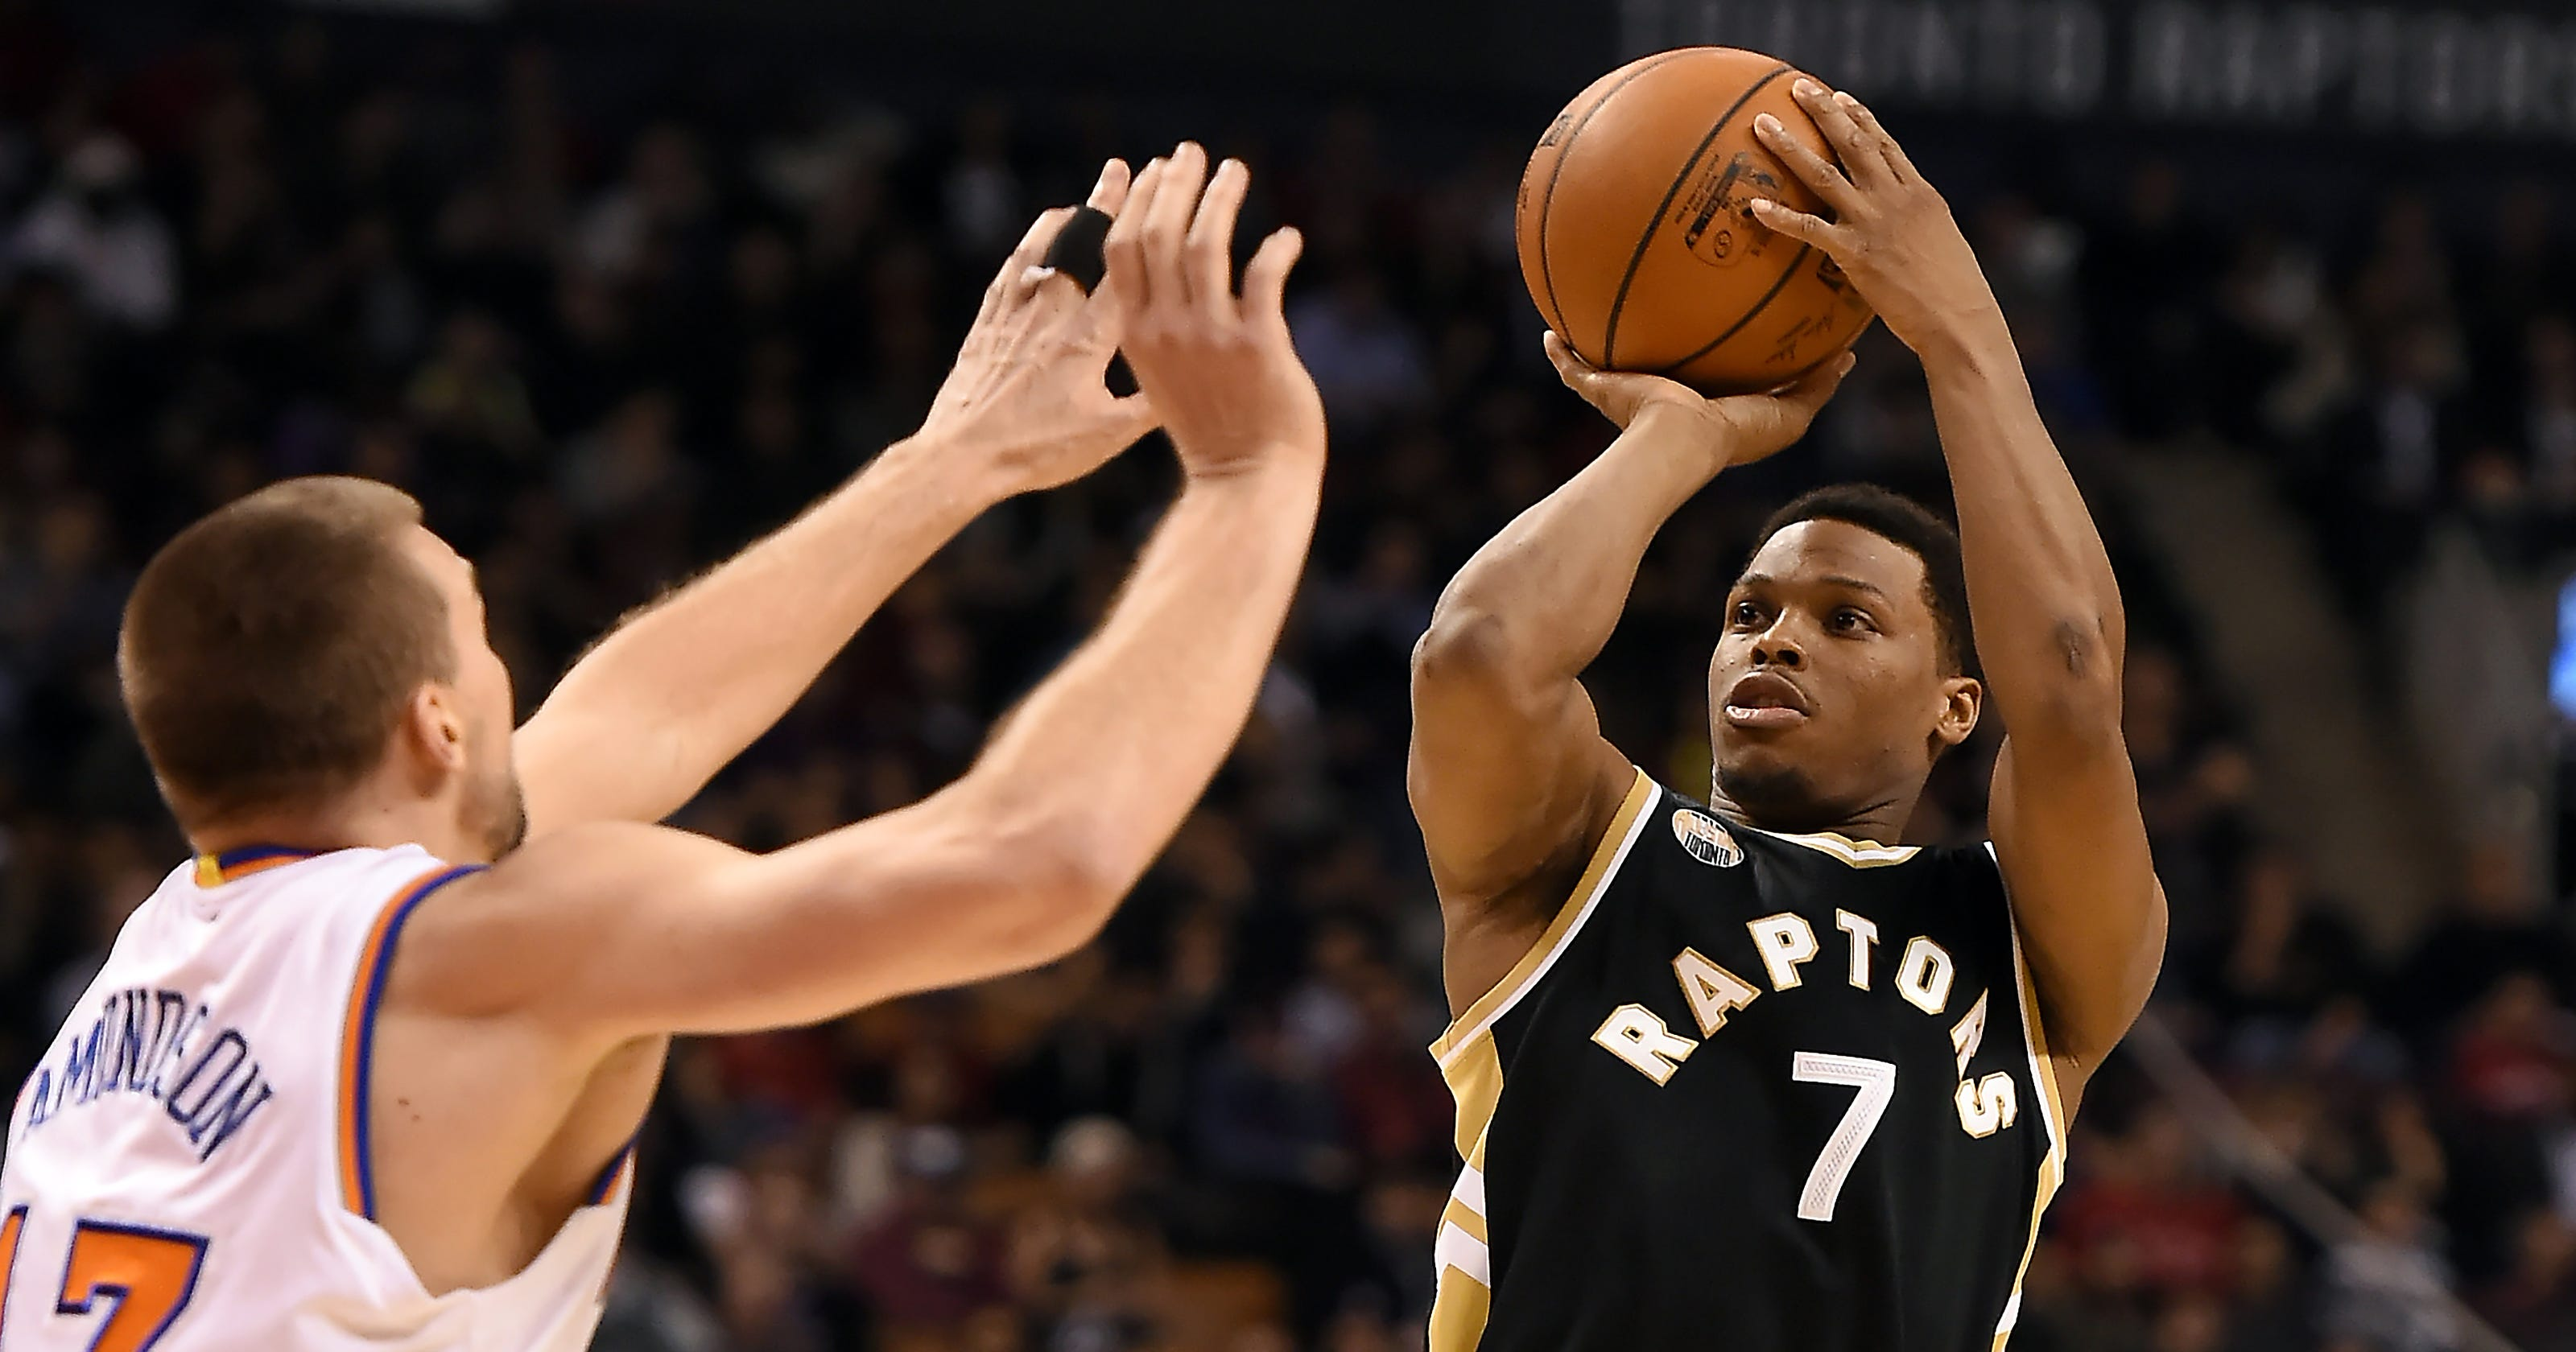 ac166268857 Raptors' Kyle Lowry on 2013 trade to the Knicks: 'That deal was done'